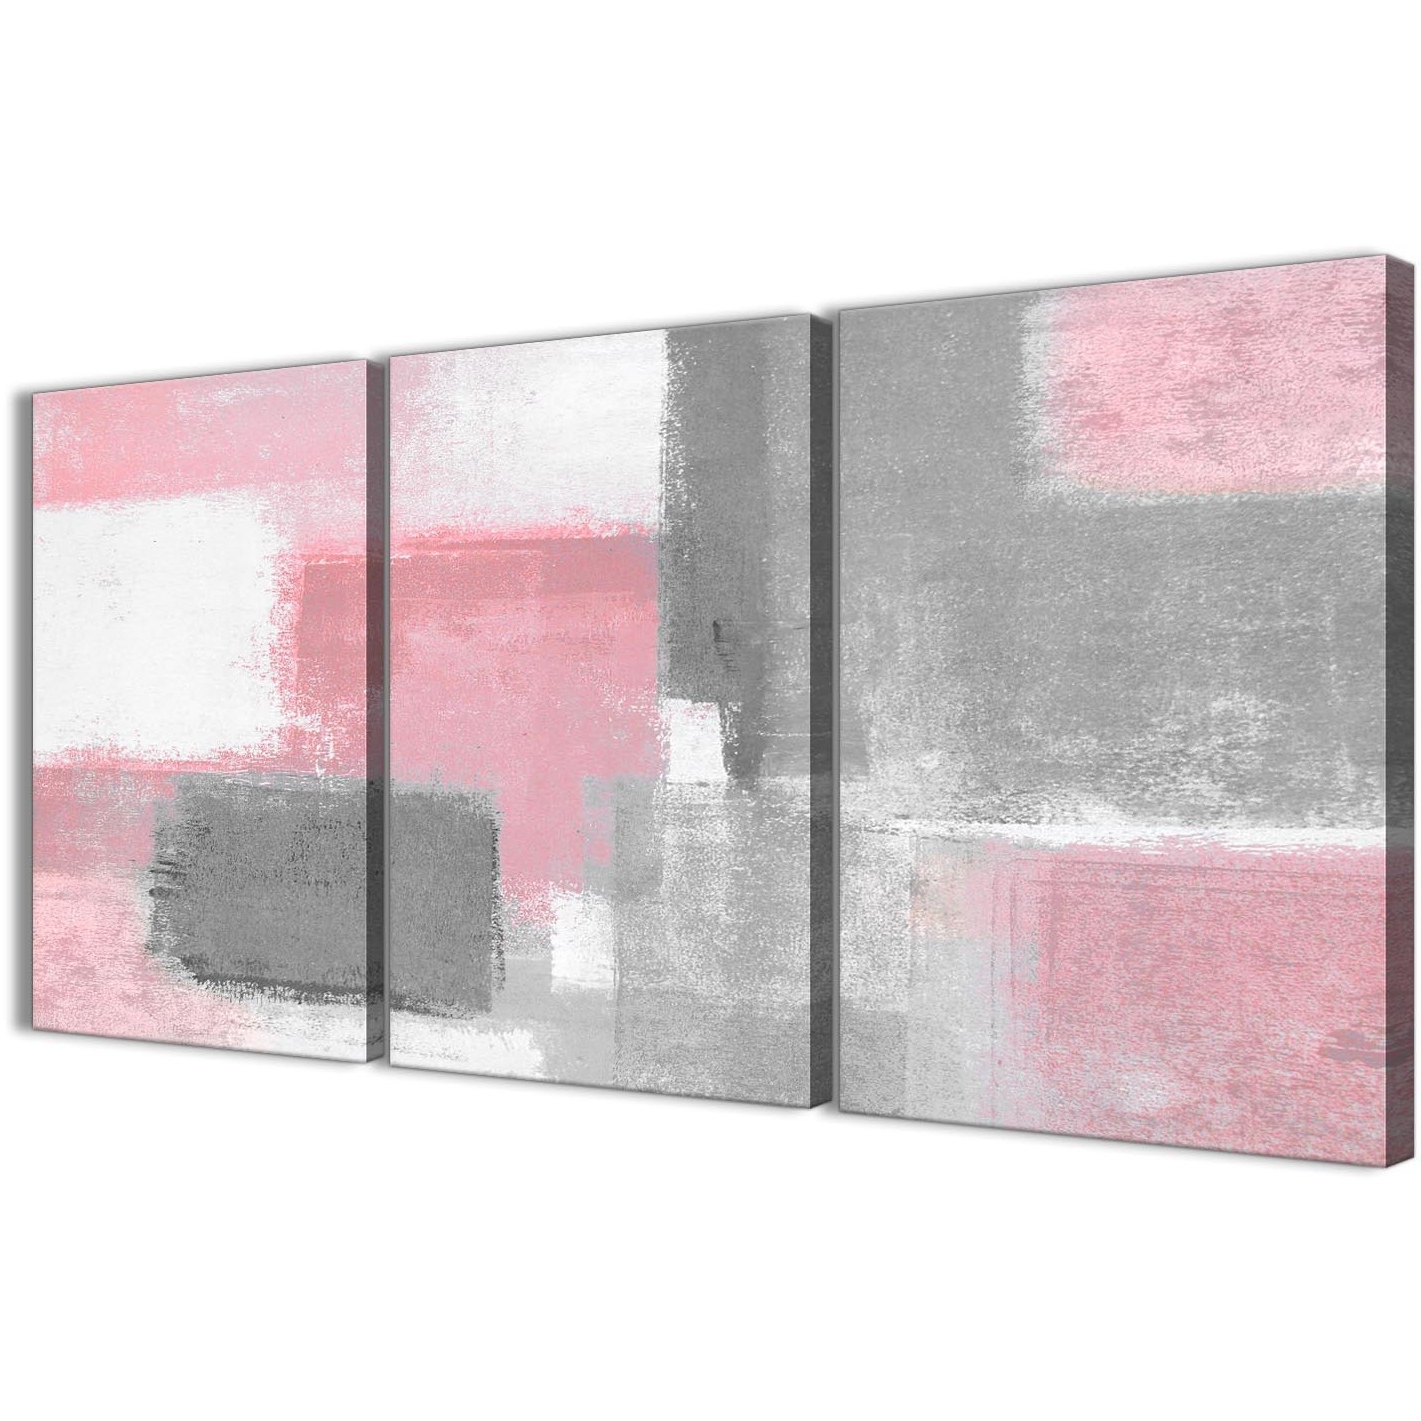 3 Piece Blush Pink Grey Painting Office Canvas Wall Art Decor Pertaining To Most Recently Released Gray Canvas Wall Art (View 2 of 20)